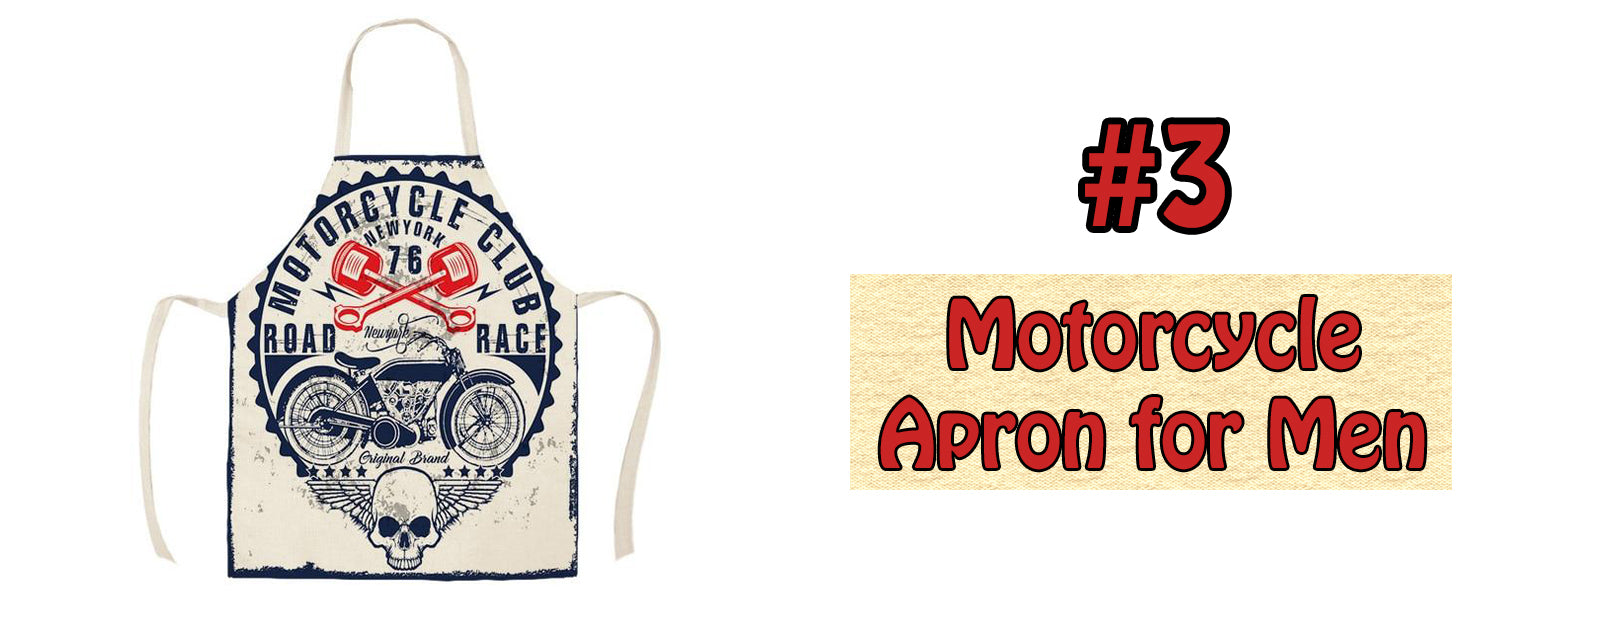 Motorcycle Apron for Men